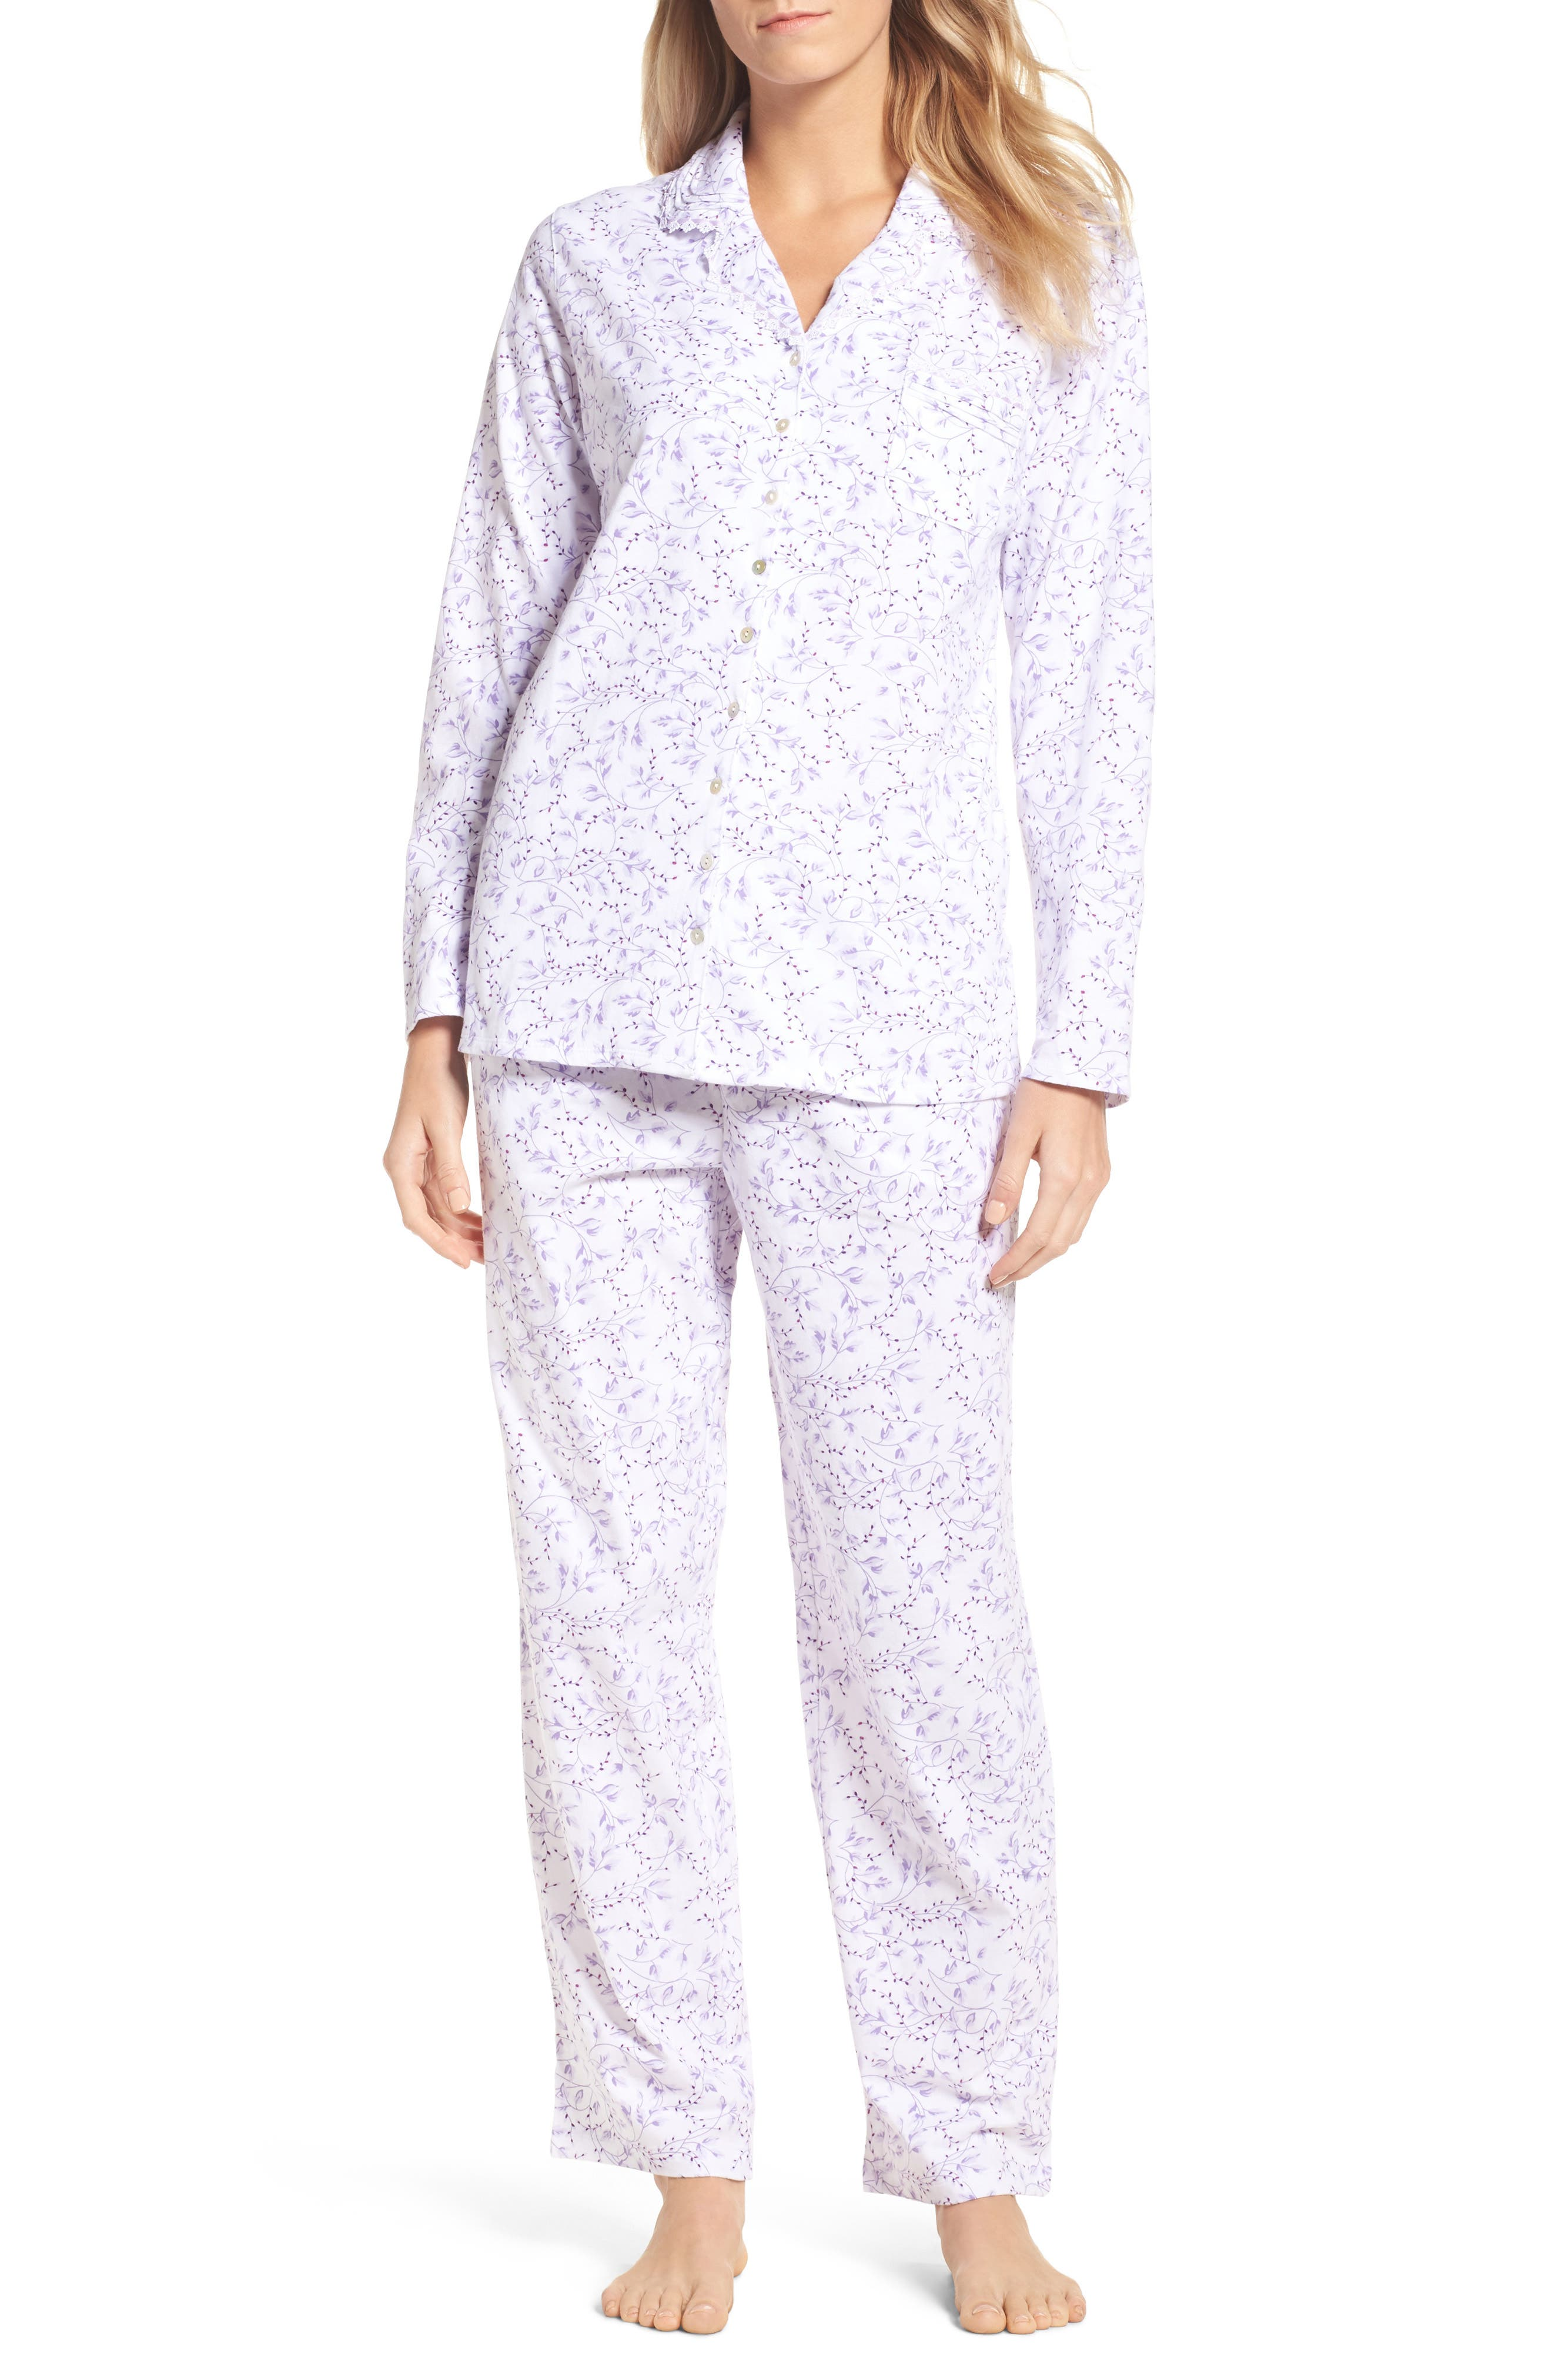 Notch Collar Pajamas,                         Main,                         color, White/ Floral